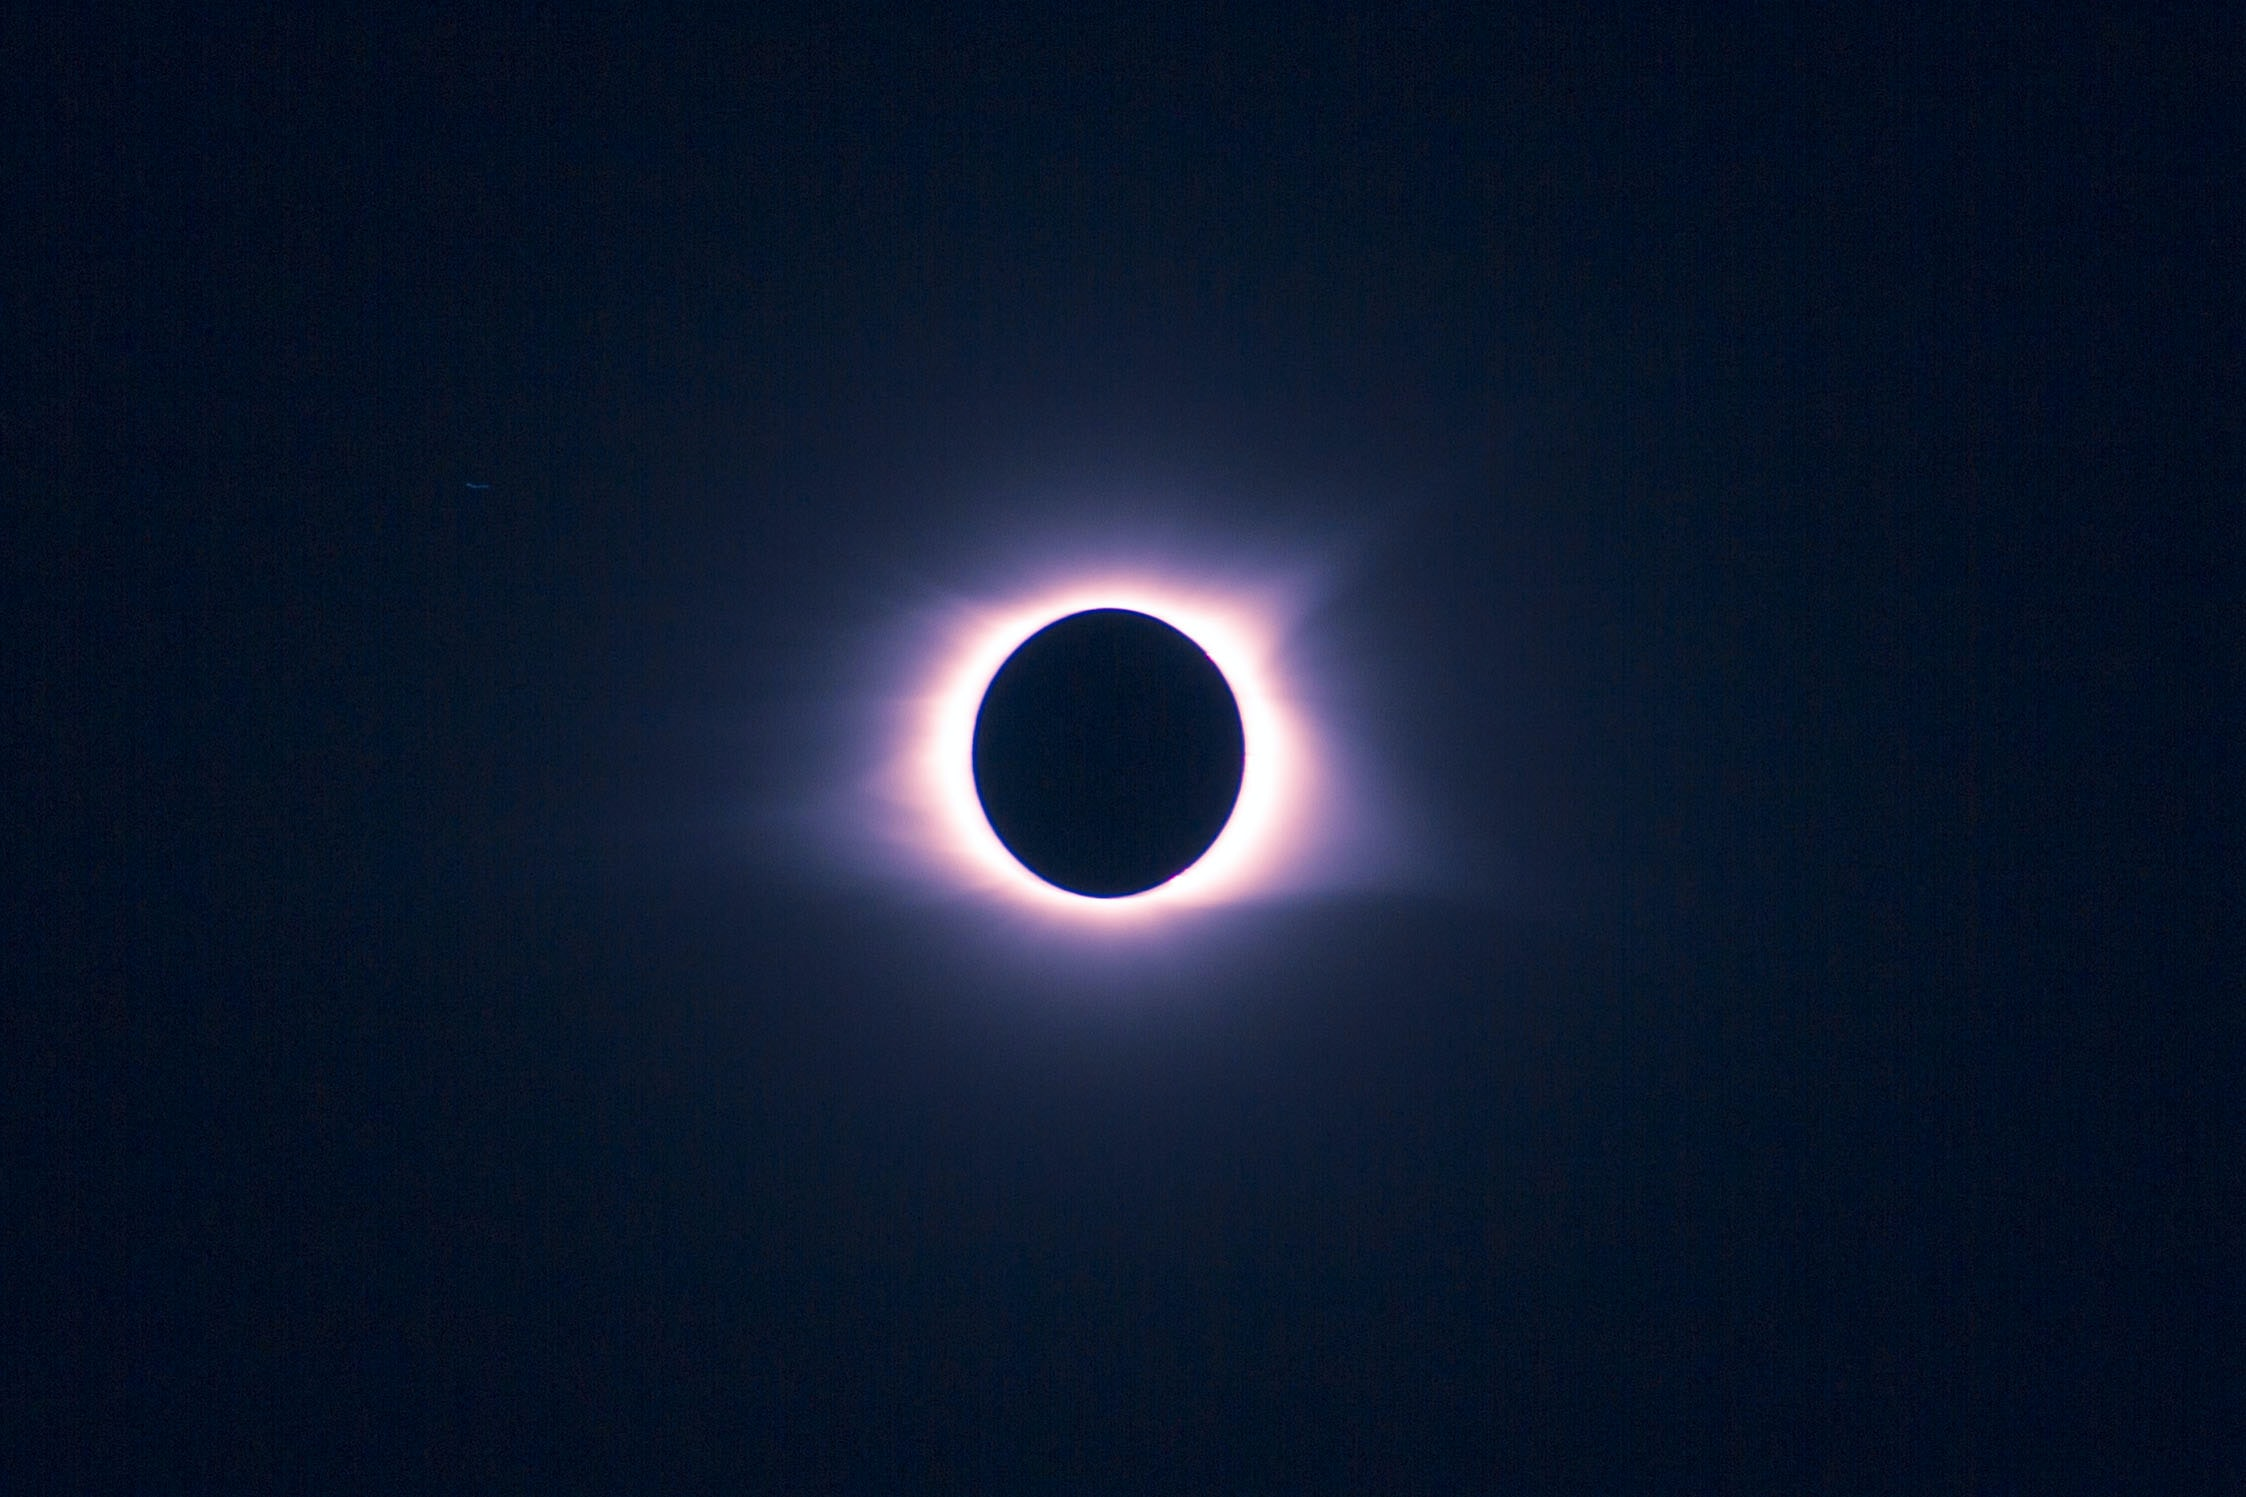 eclipse during night time